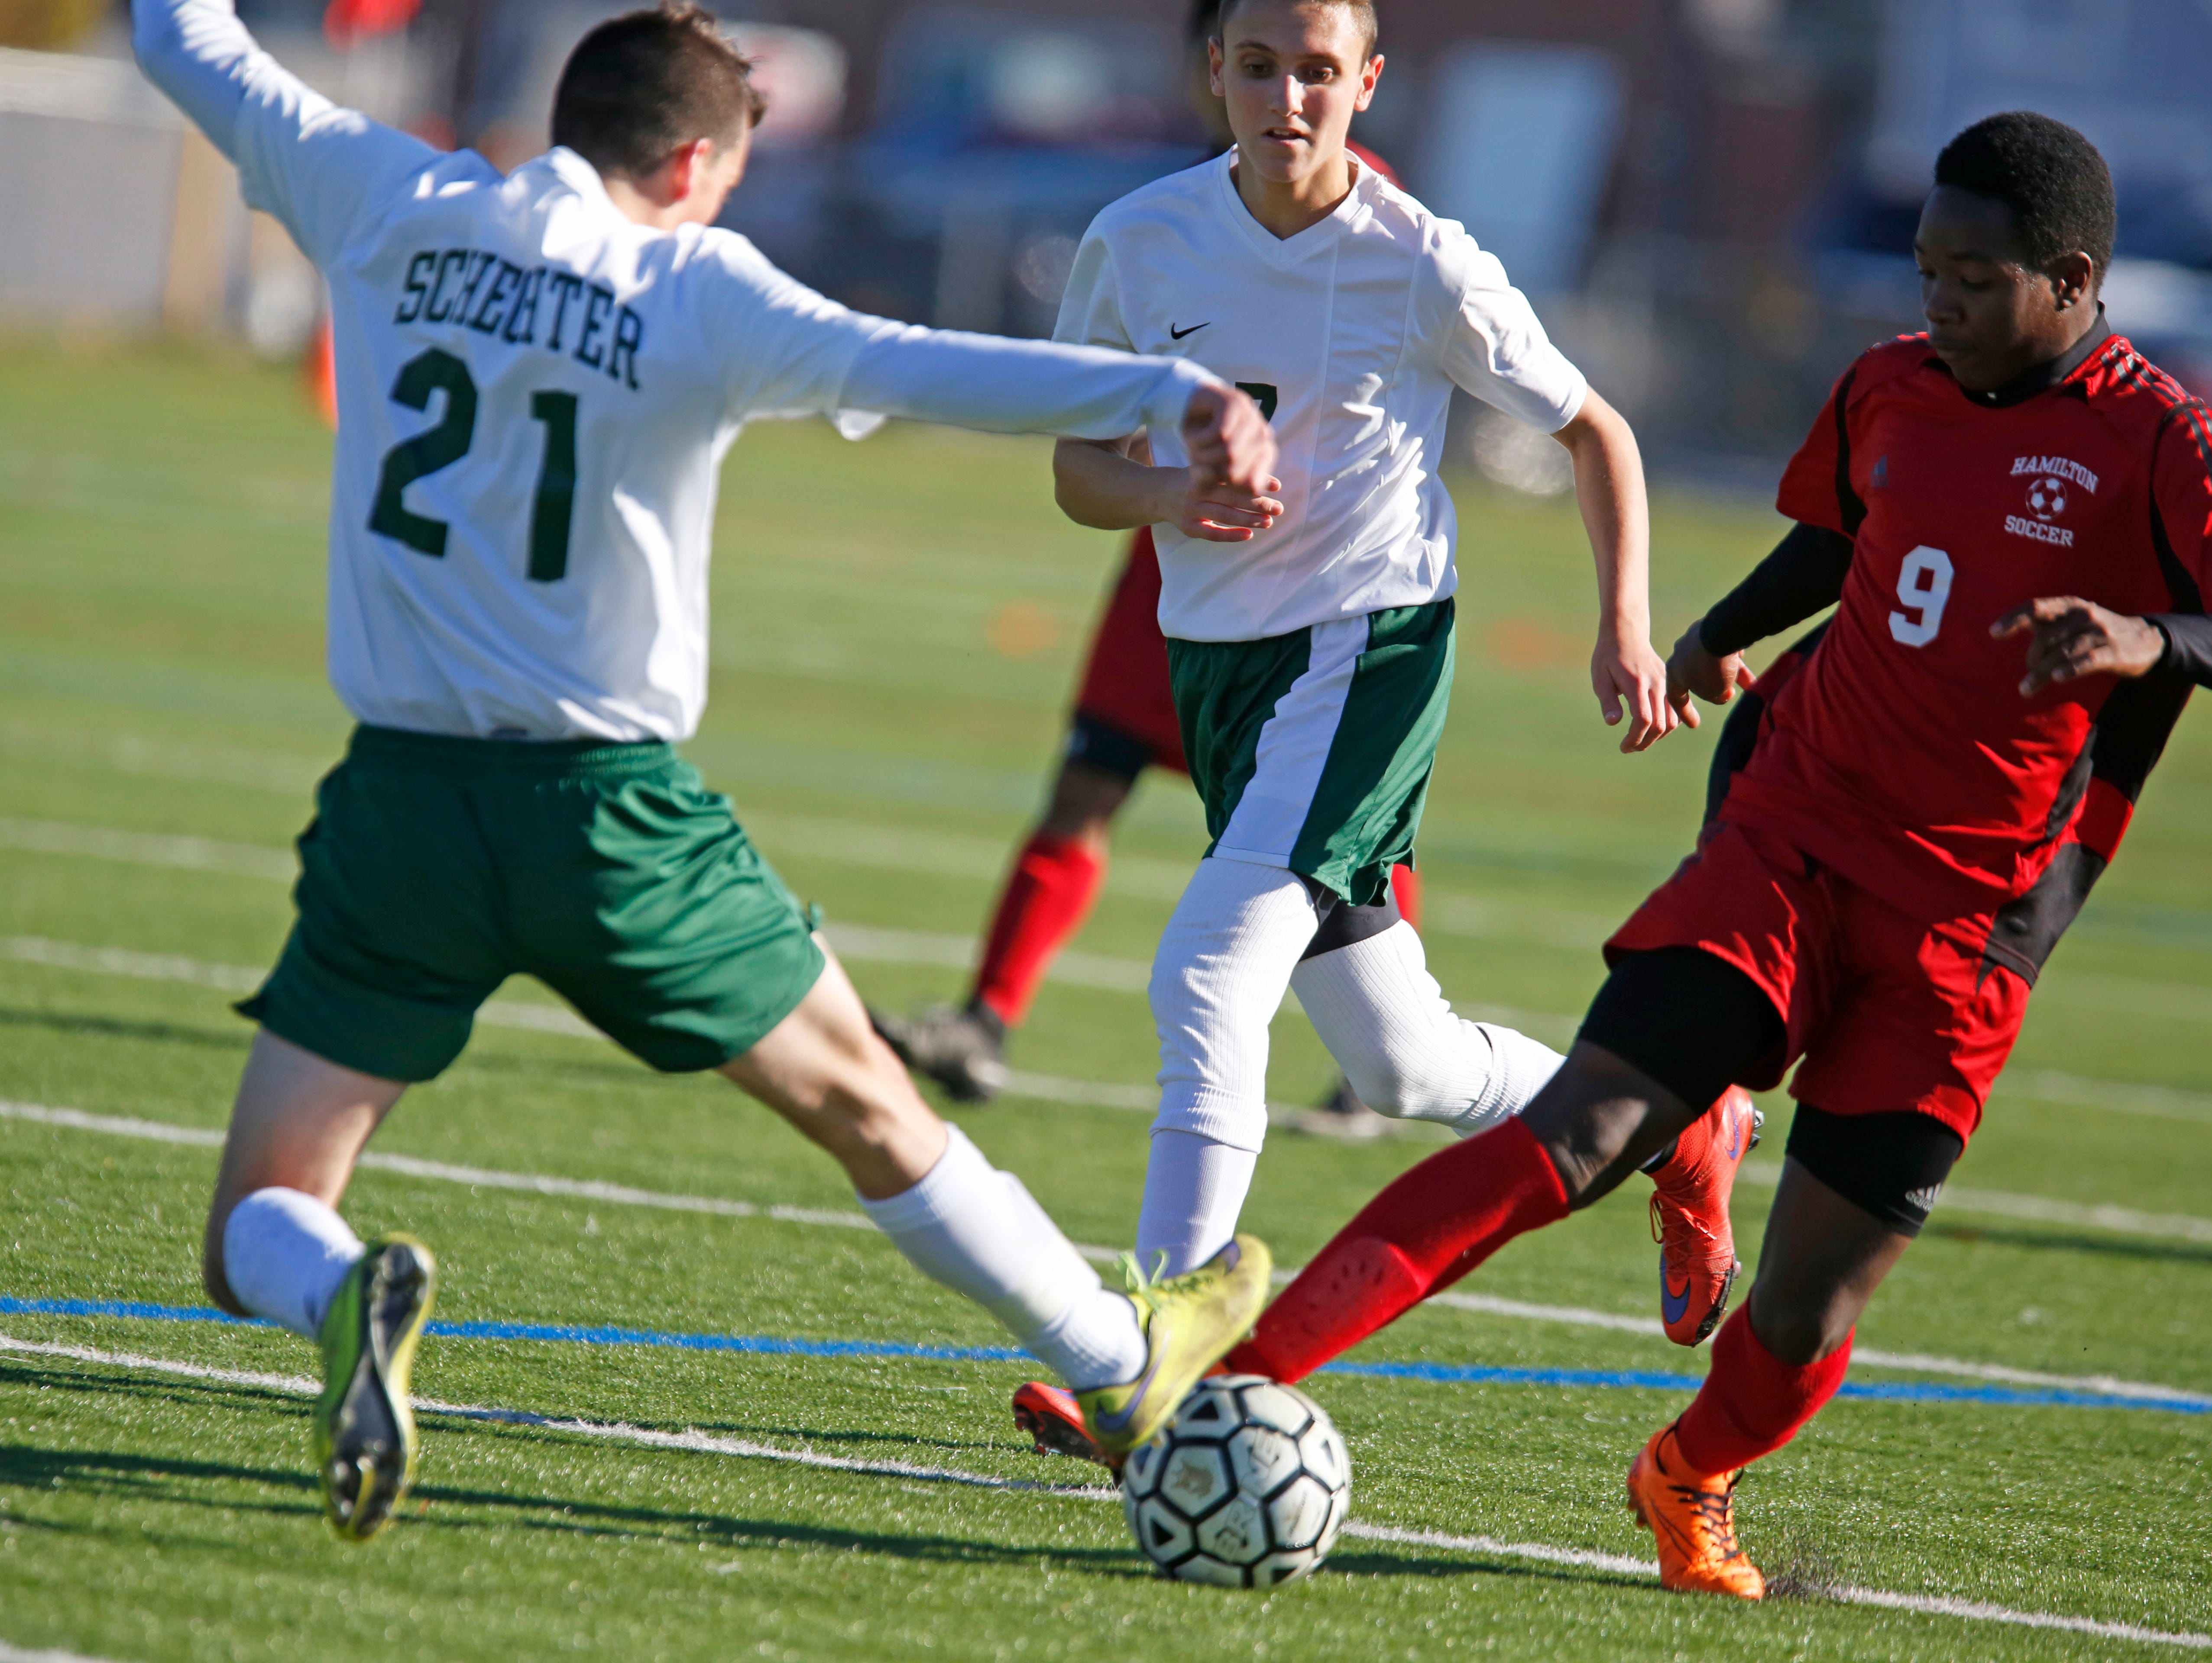 Solomon Schechter's Cameron Roth and Hamilton's Alpotchino Andre battle for possession in the Class C boys soccer final Oct. 30, 2015 at Arlington High School in Lagrangeville. Solomon Schechter won, 2-1, in overtime.